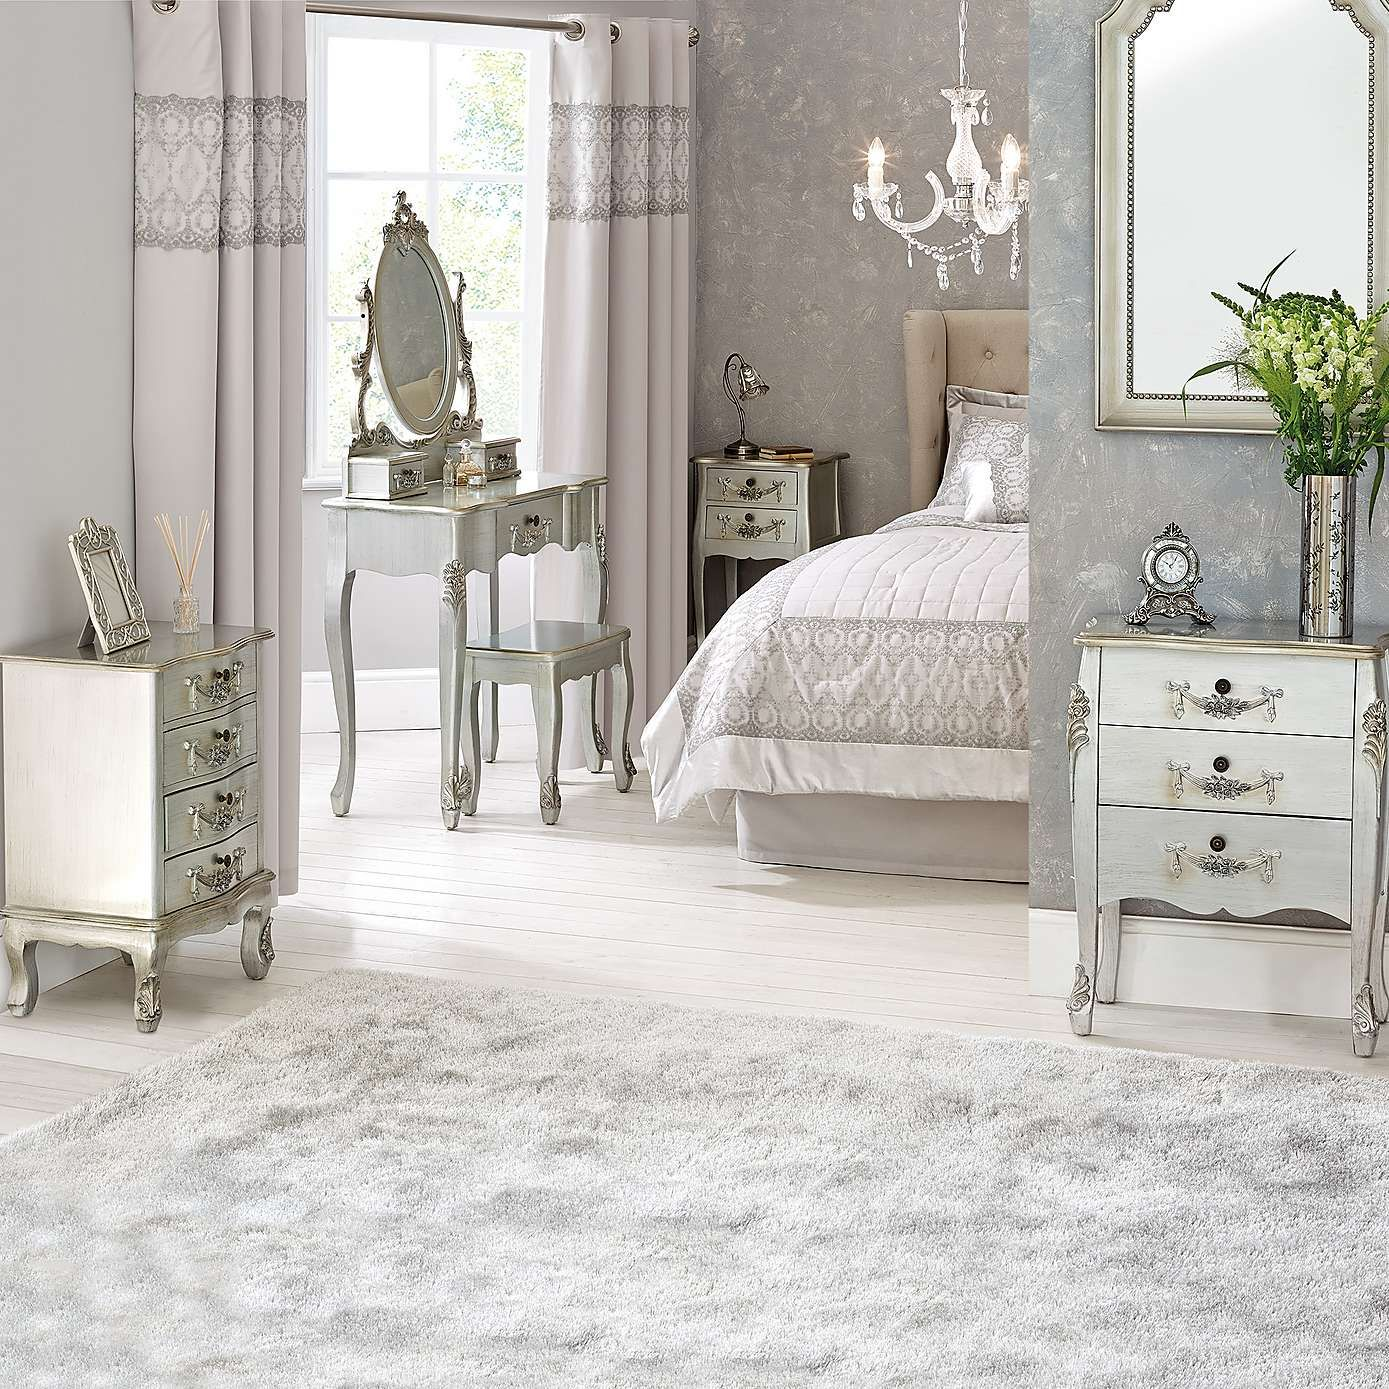 Toulouse Silver Double Wardrobe Silver Bedroom Bedrooms And - Toulouse bedroom furniture white